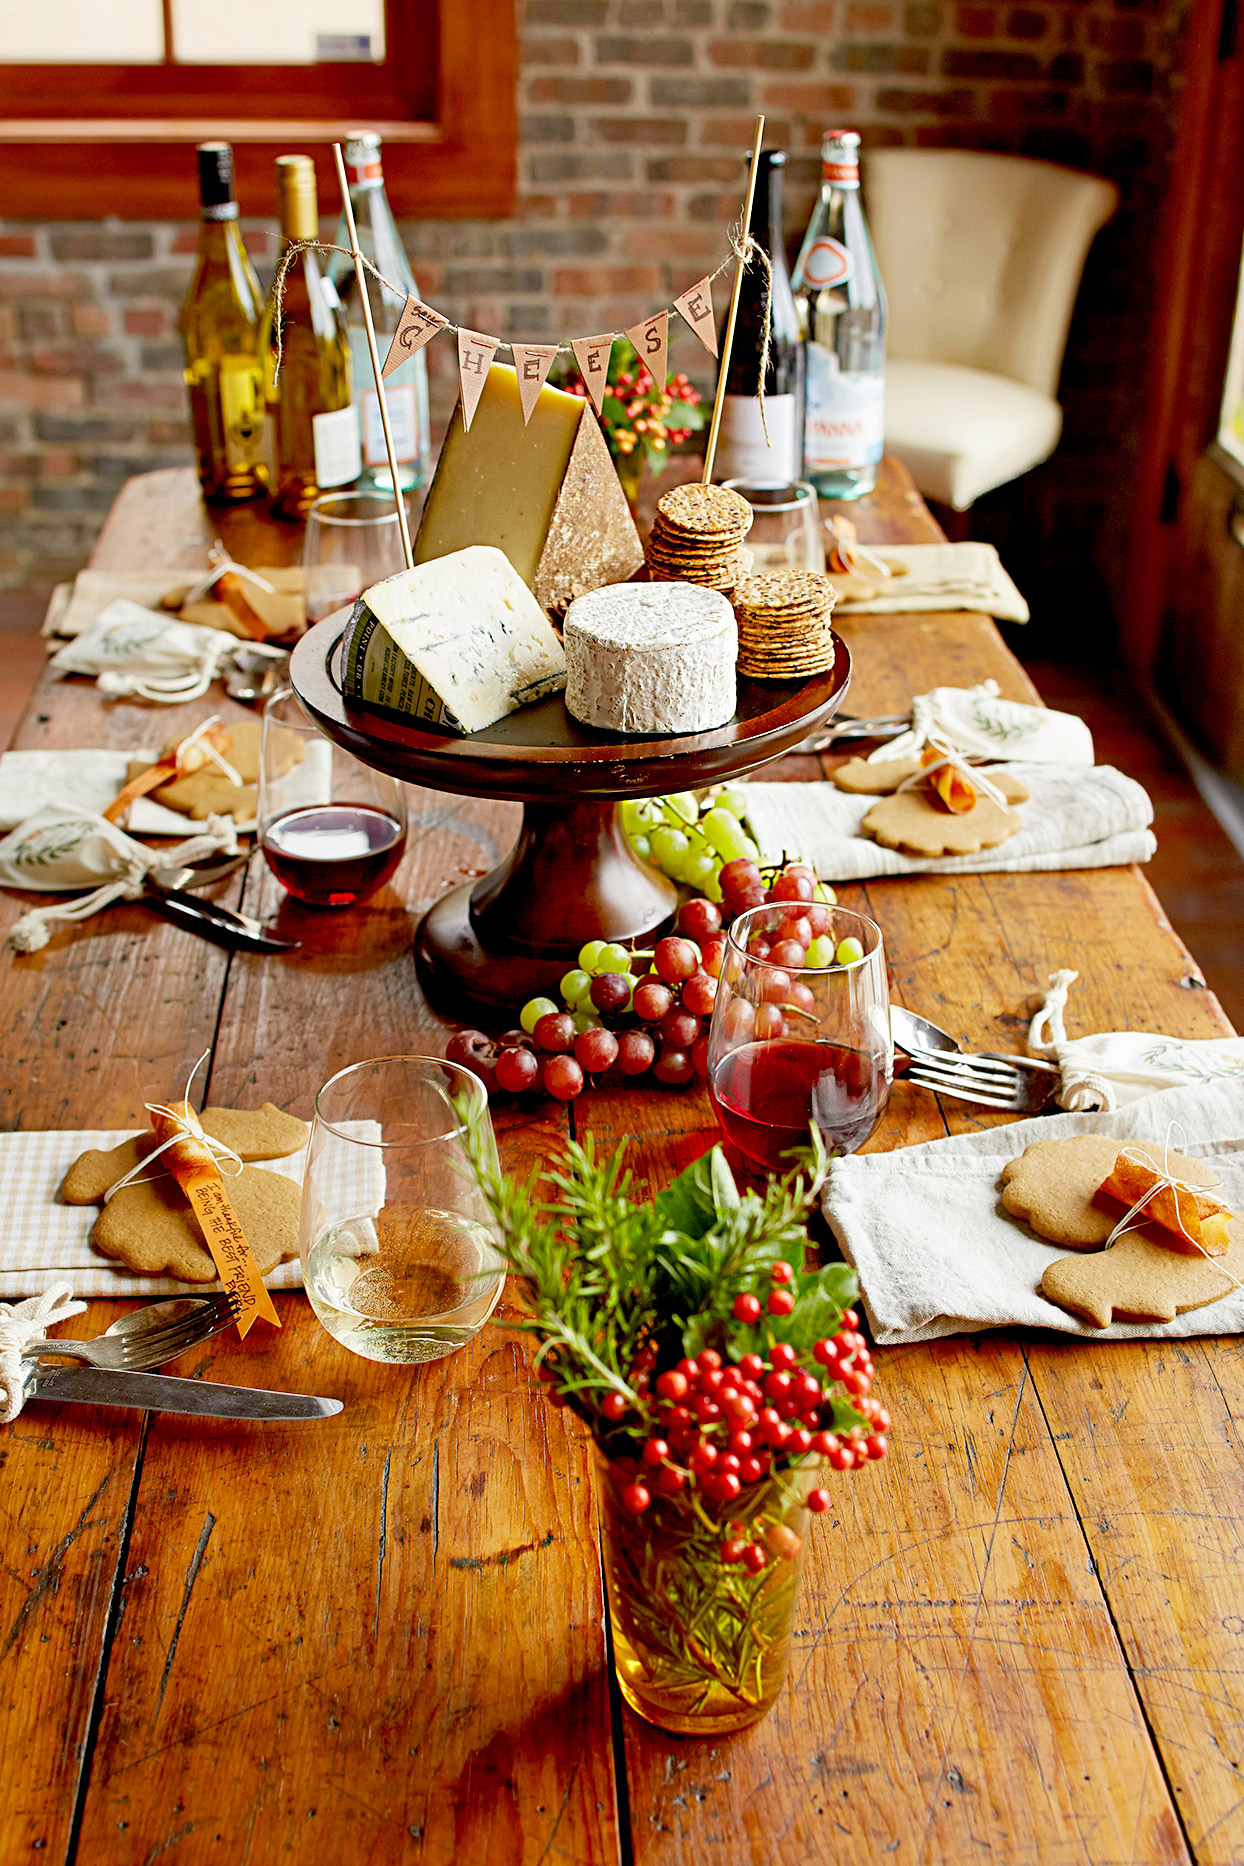 Dining setting with cheese plate and wine